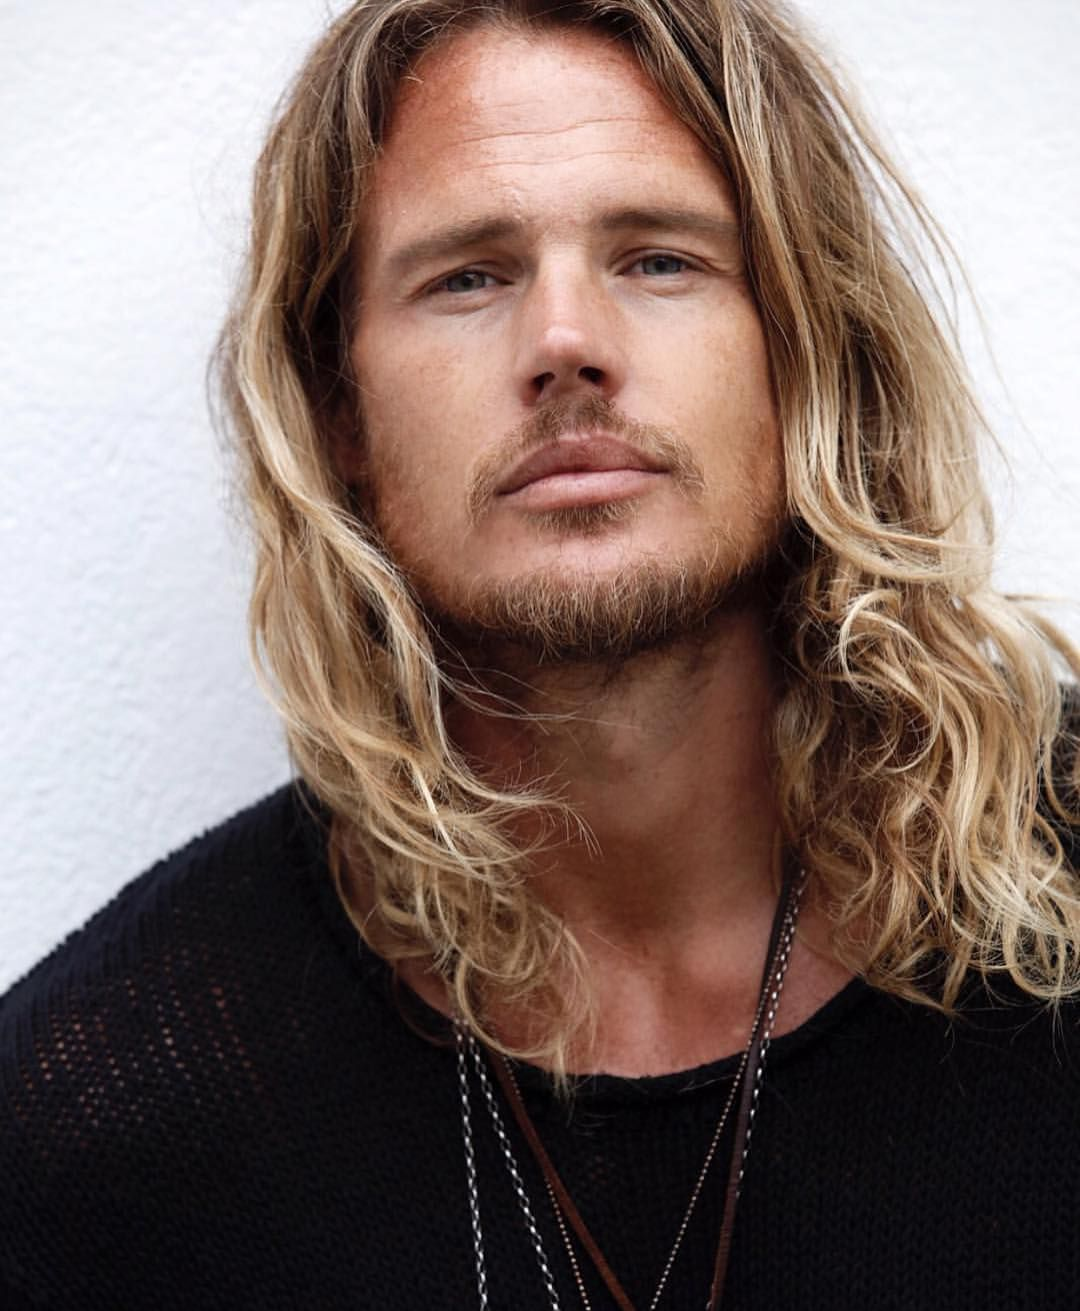 Surfer Hairstyles For Men Hairmenstyle Official Hairmenstyle O Fotos Y V Deos De